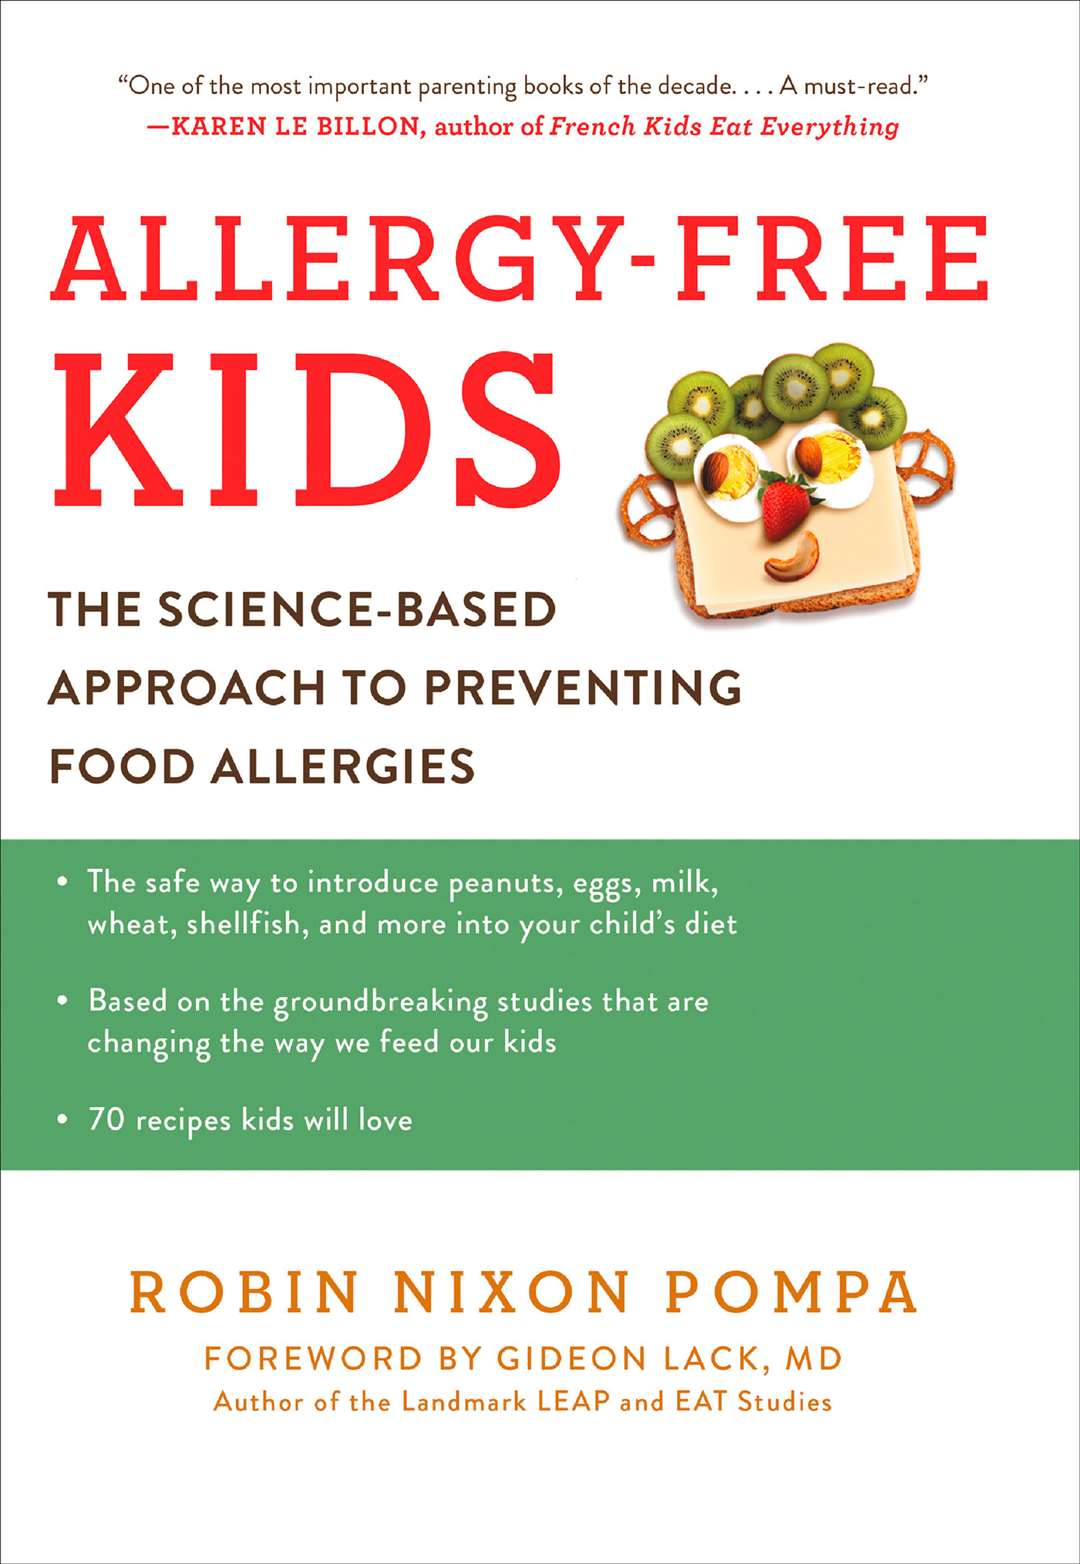 Allergy-Free Kids by Robin Nixon Pompa is published by William Morrow, £16.99